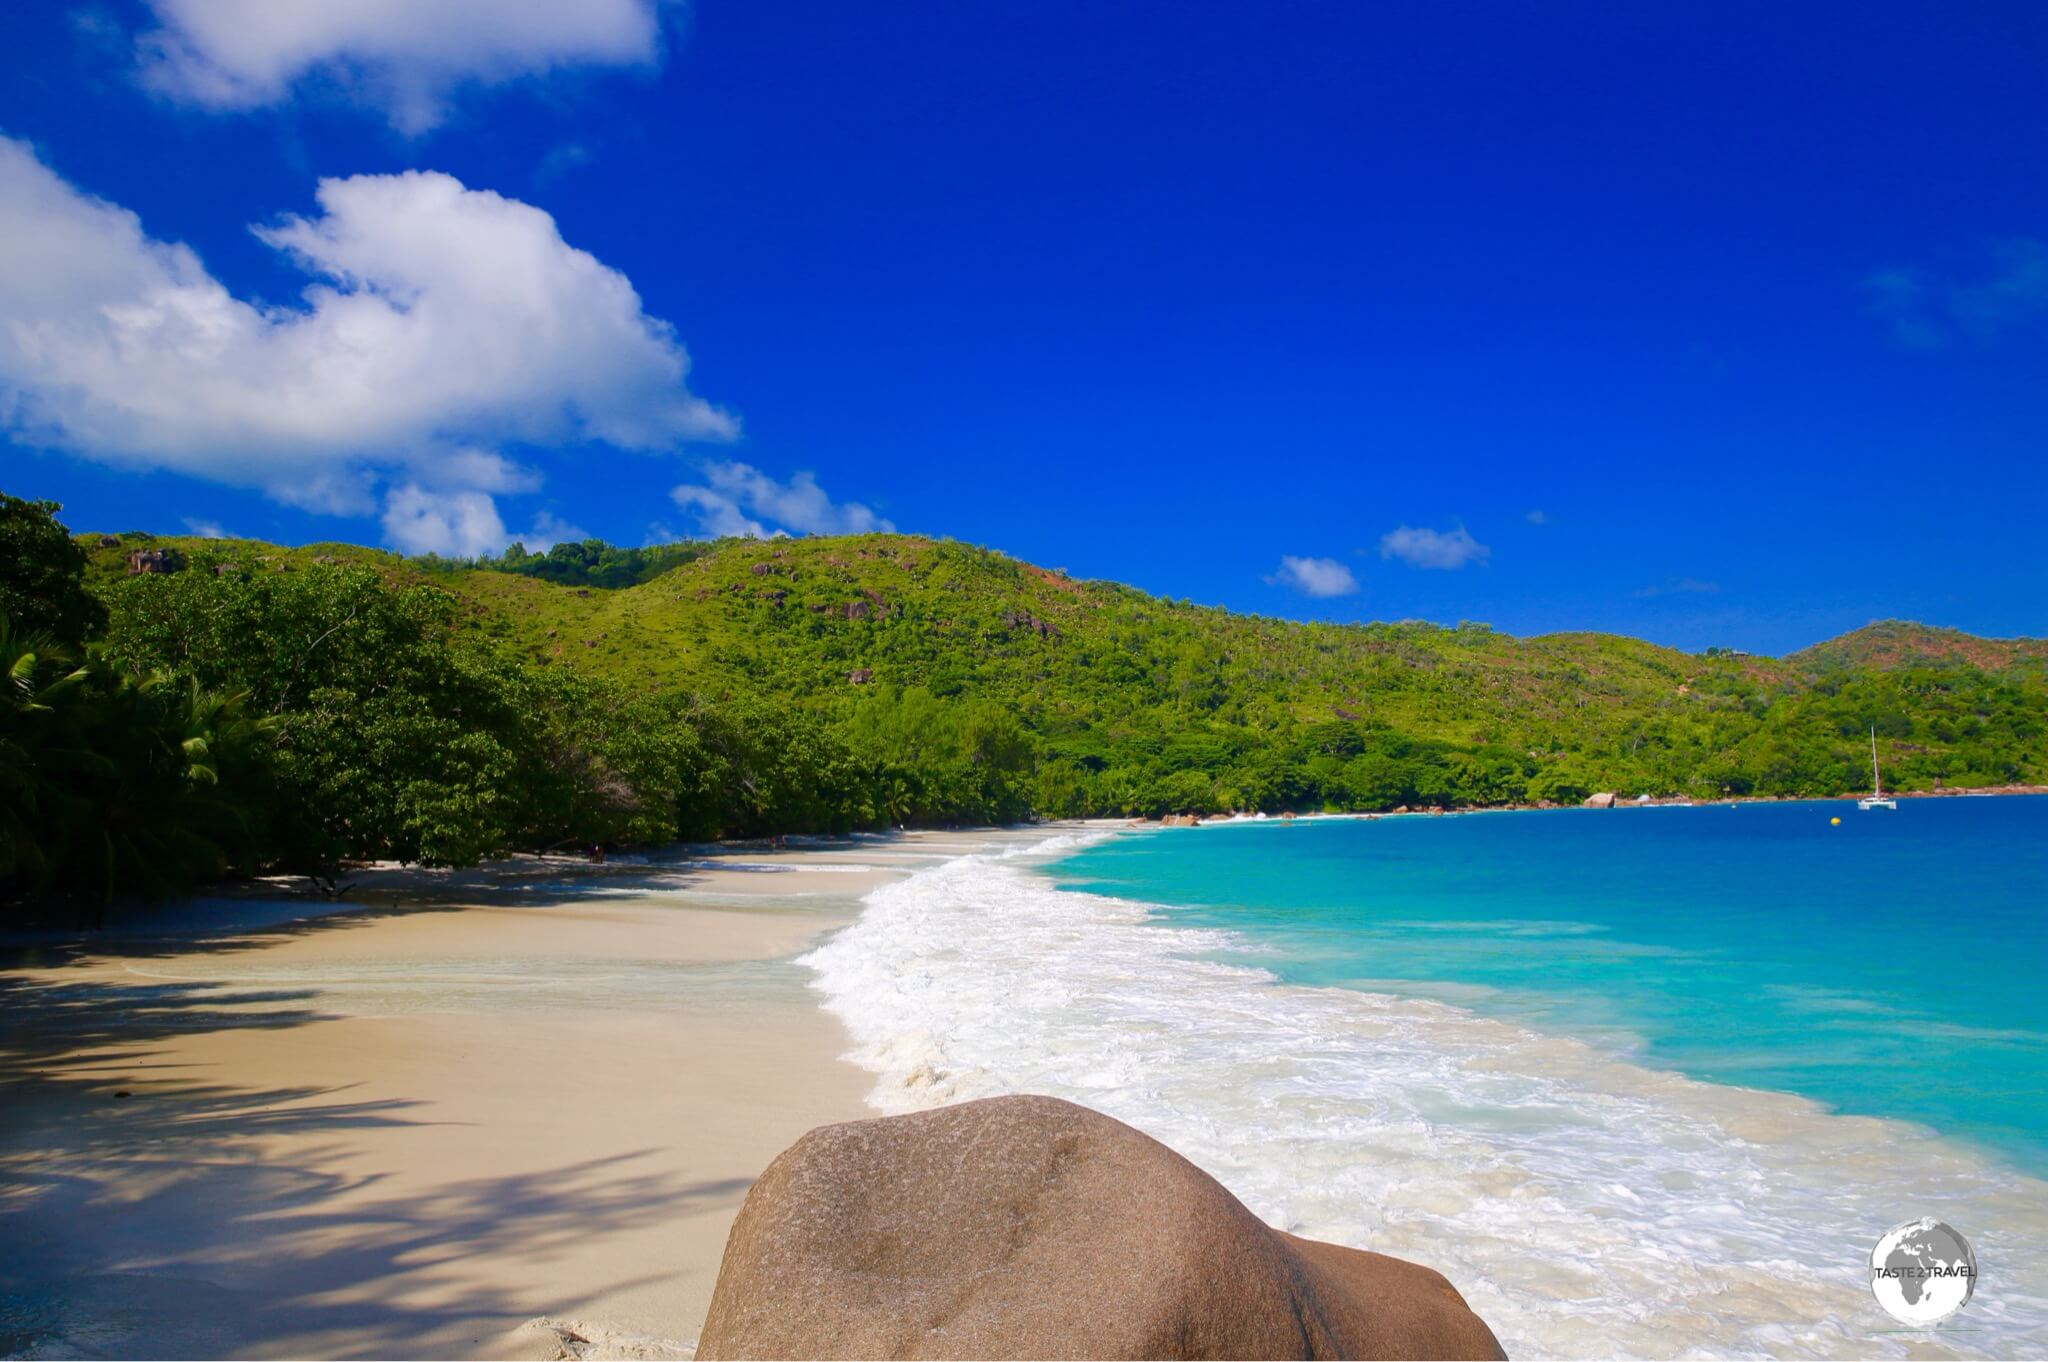 The best time to photograph Anse Lazio is in the early morning before the tourist hordes arrive.